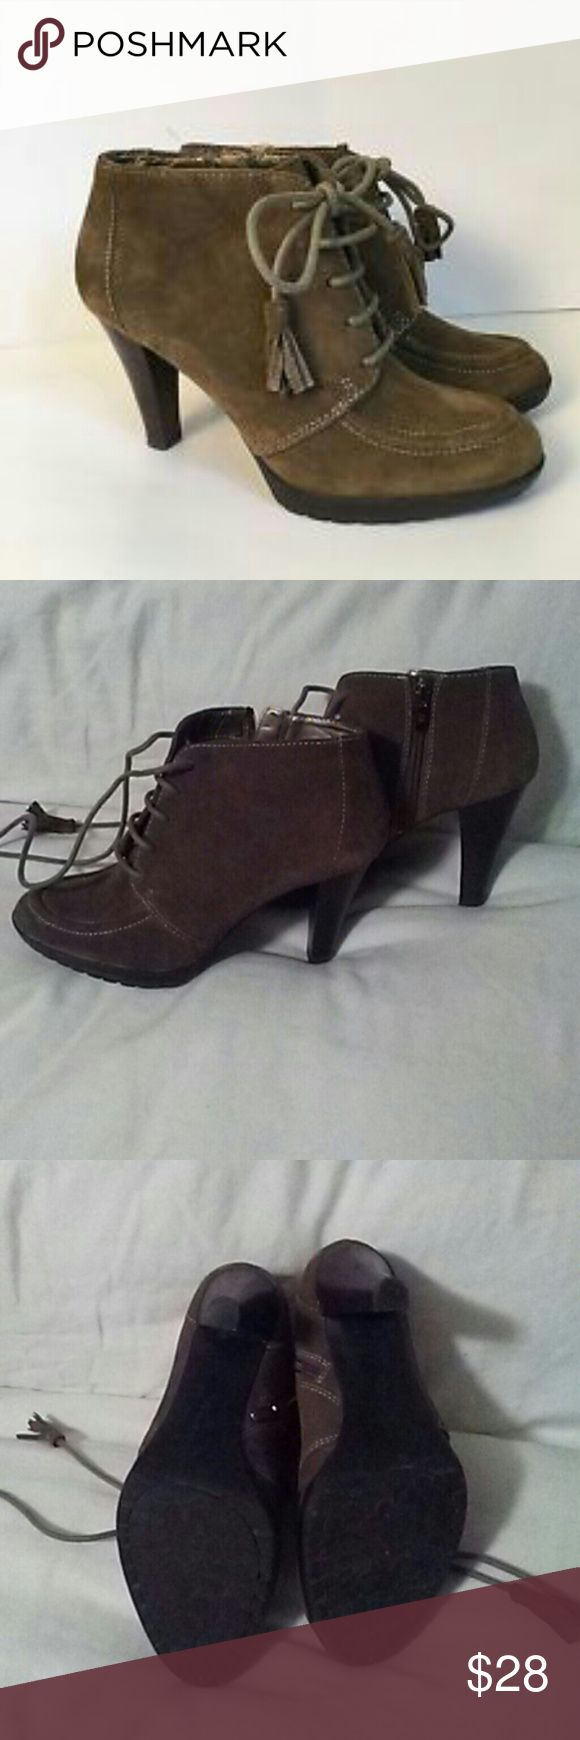 """Anne Klein olive green Tutorial ankle booties Adorable genuine suede ankle booties in an olive green. Zips on side and laces up. Nice neutral olive green. Great shape...minimal wear. Heel measures 3.5"""" high.  Anne Klein tutorial size 7.5 Anne Klein Shoes Ankle Boots & Booties"""